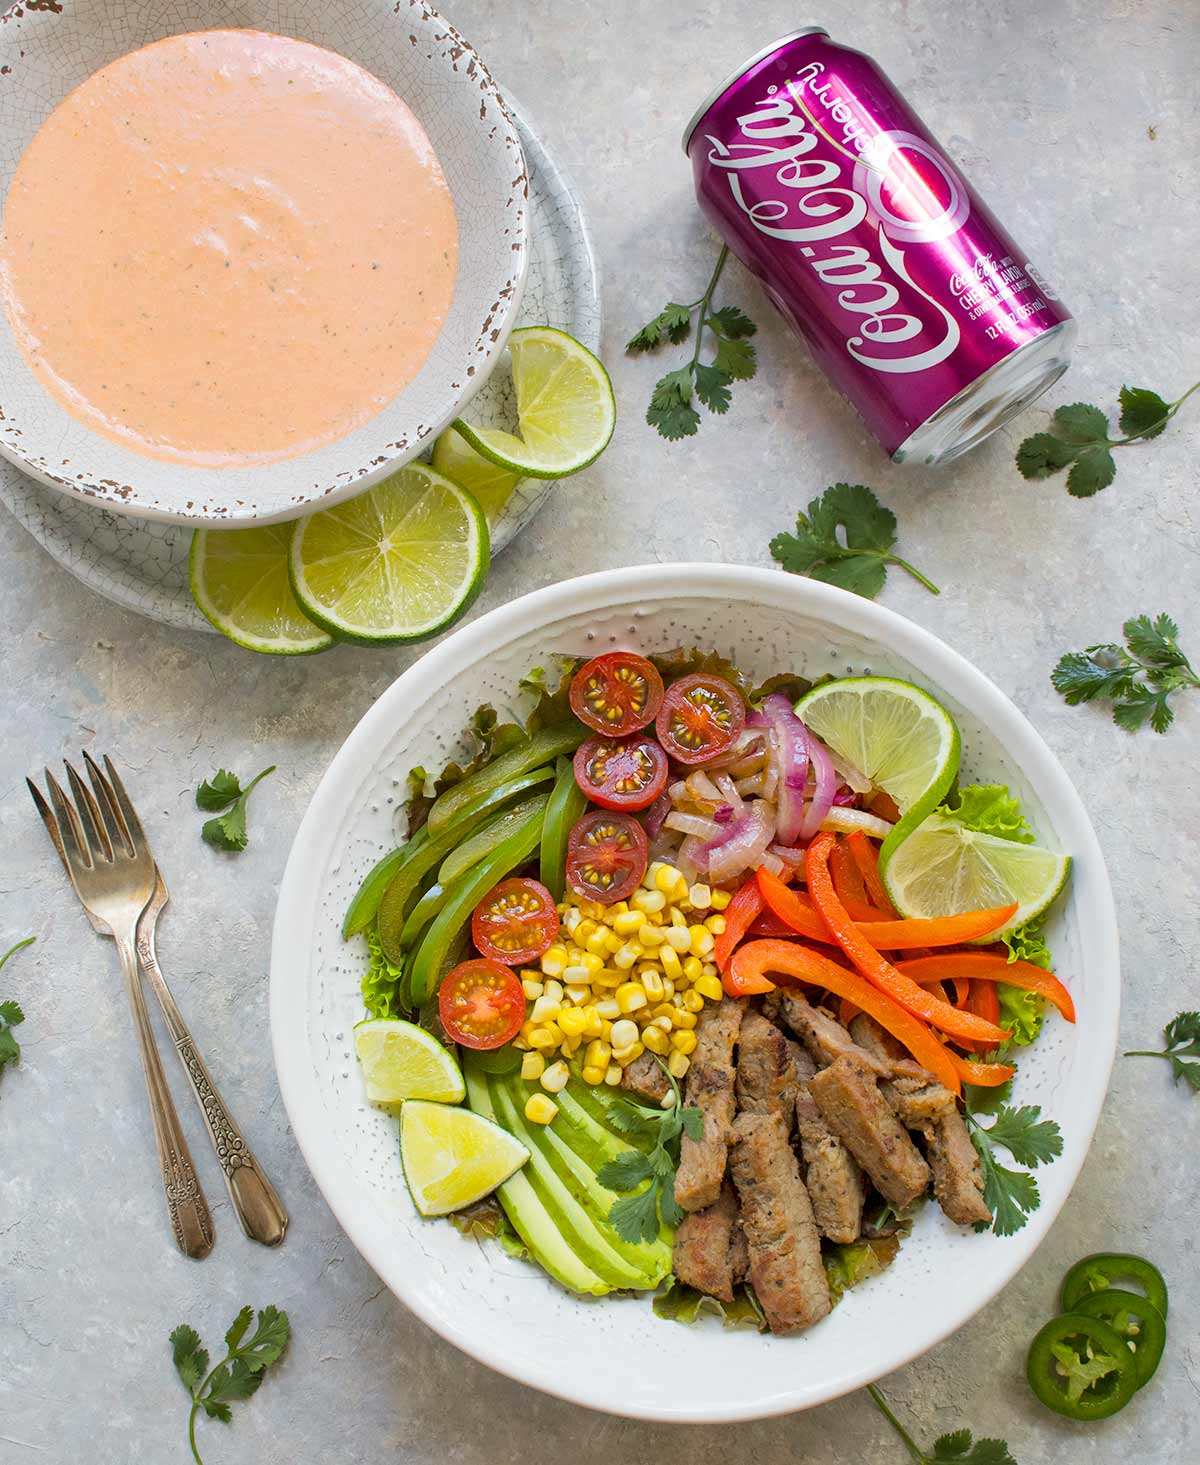 Beef Fajita Salad with Creamy Salsa Dressing, served in a bowl, with a can of Cherry Coke. Recipe at SoupAddict.com